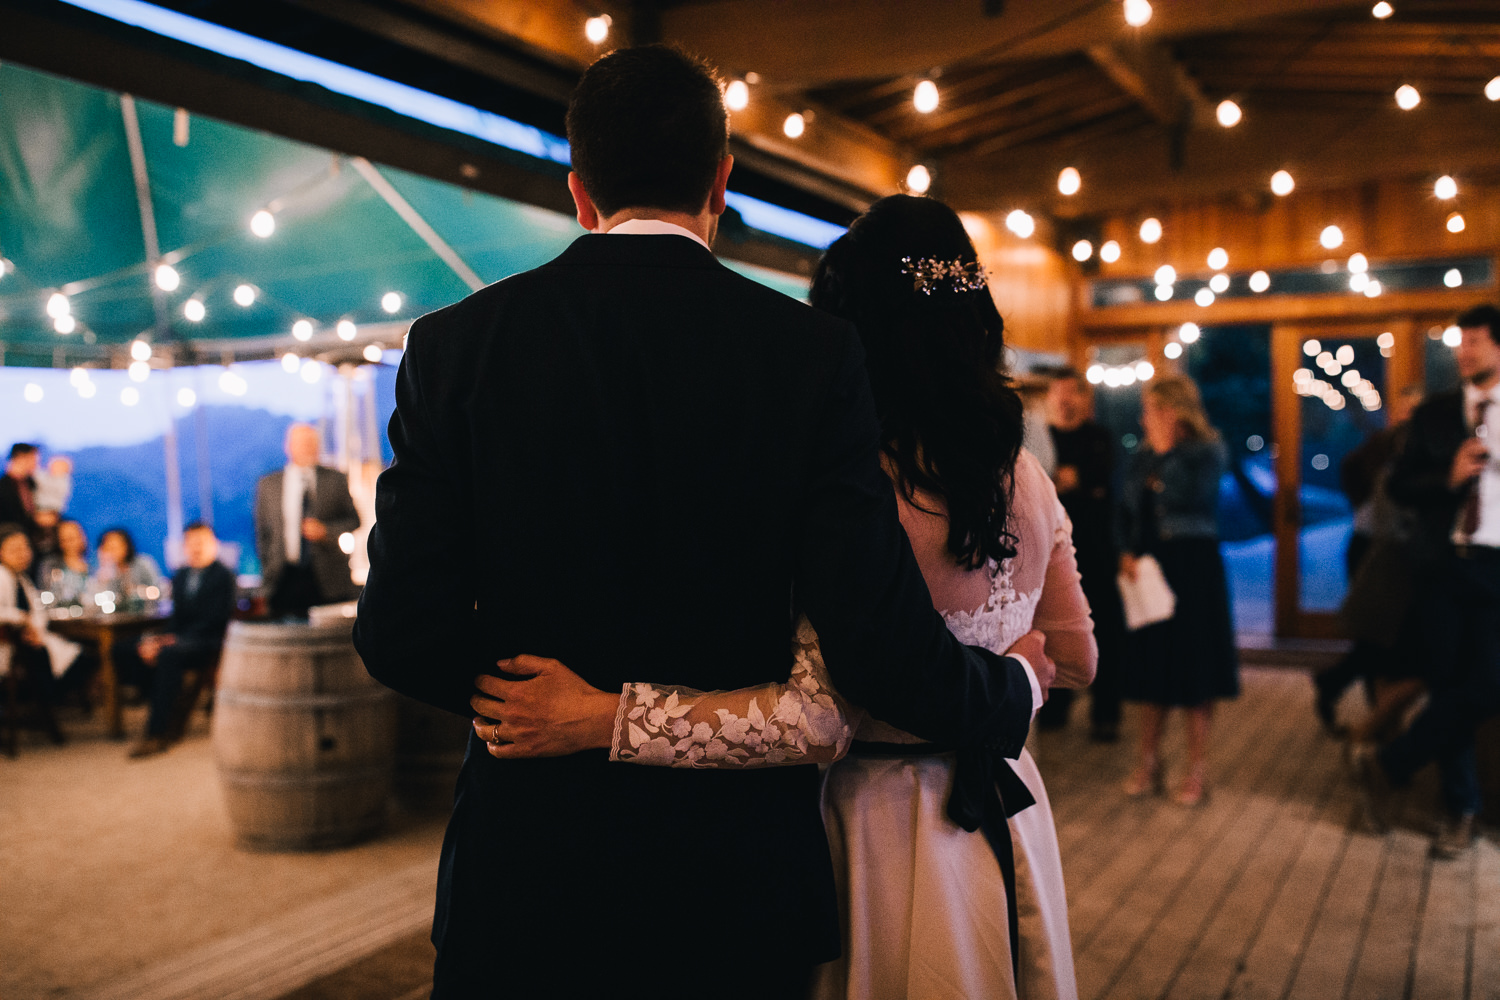 2019_05_ 182019.05.19 Lisa + Eddie South Bay Wedding Blog Photos Edited For Web 0132.jpg